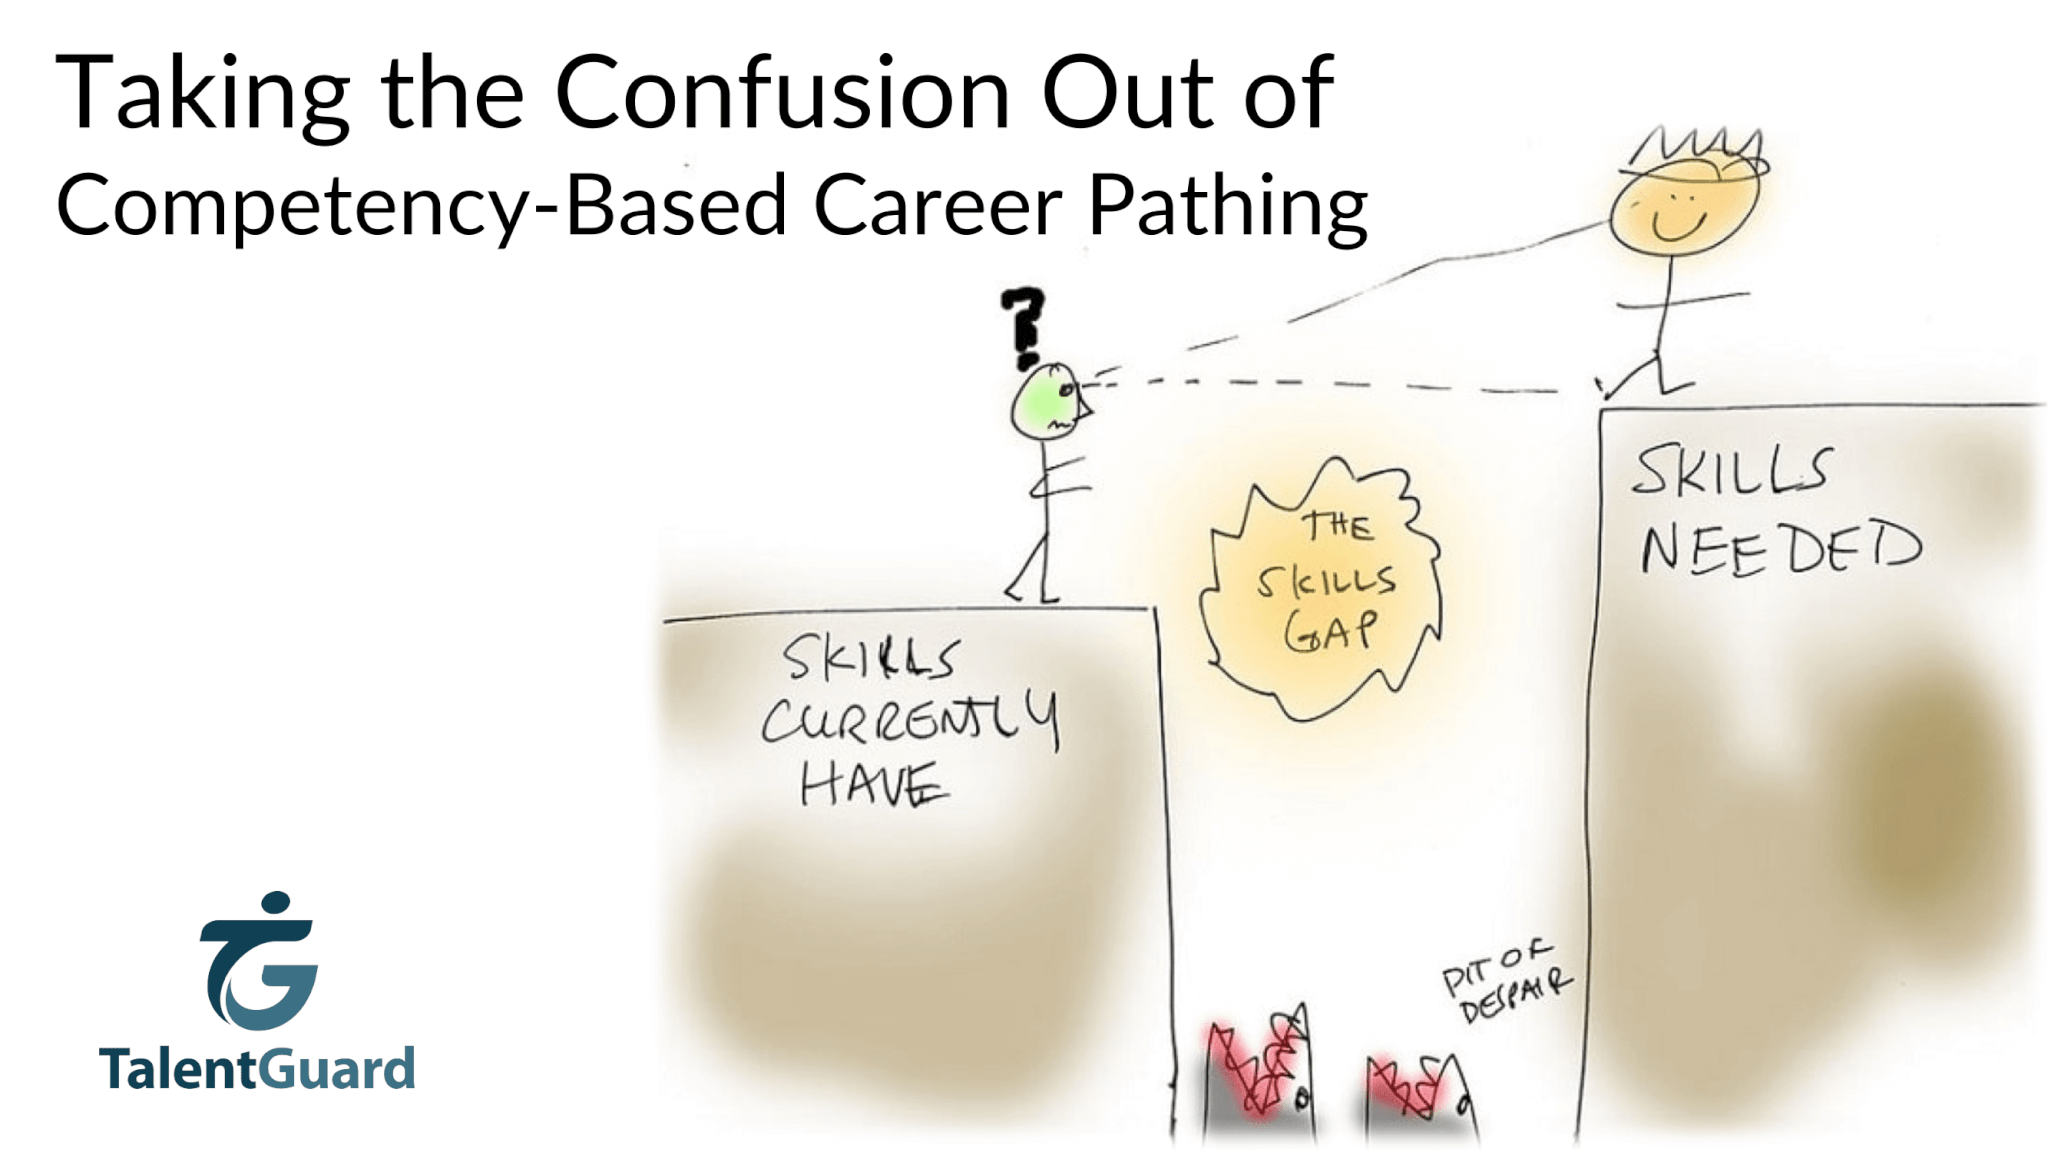 Taking the Confusion Out of Competency-Based Career Pathing